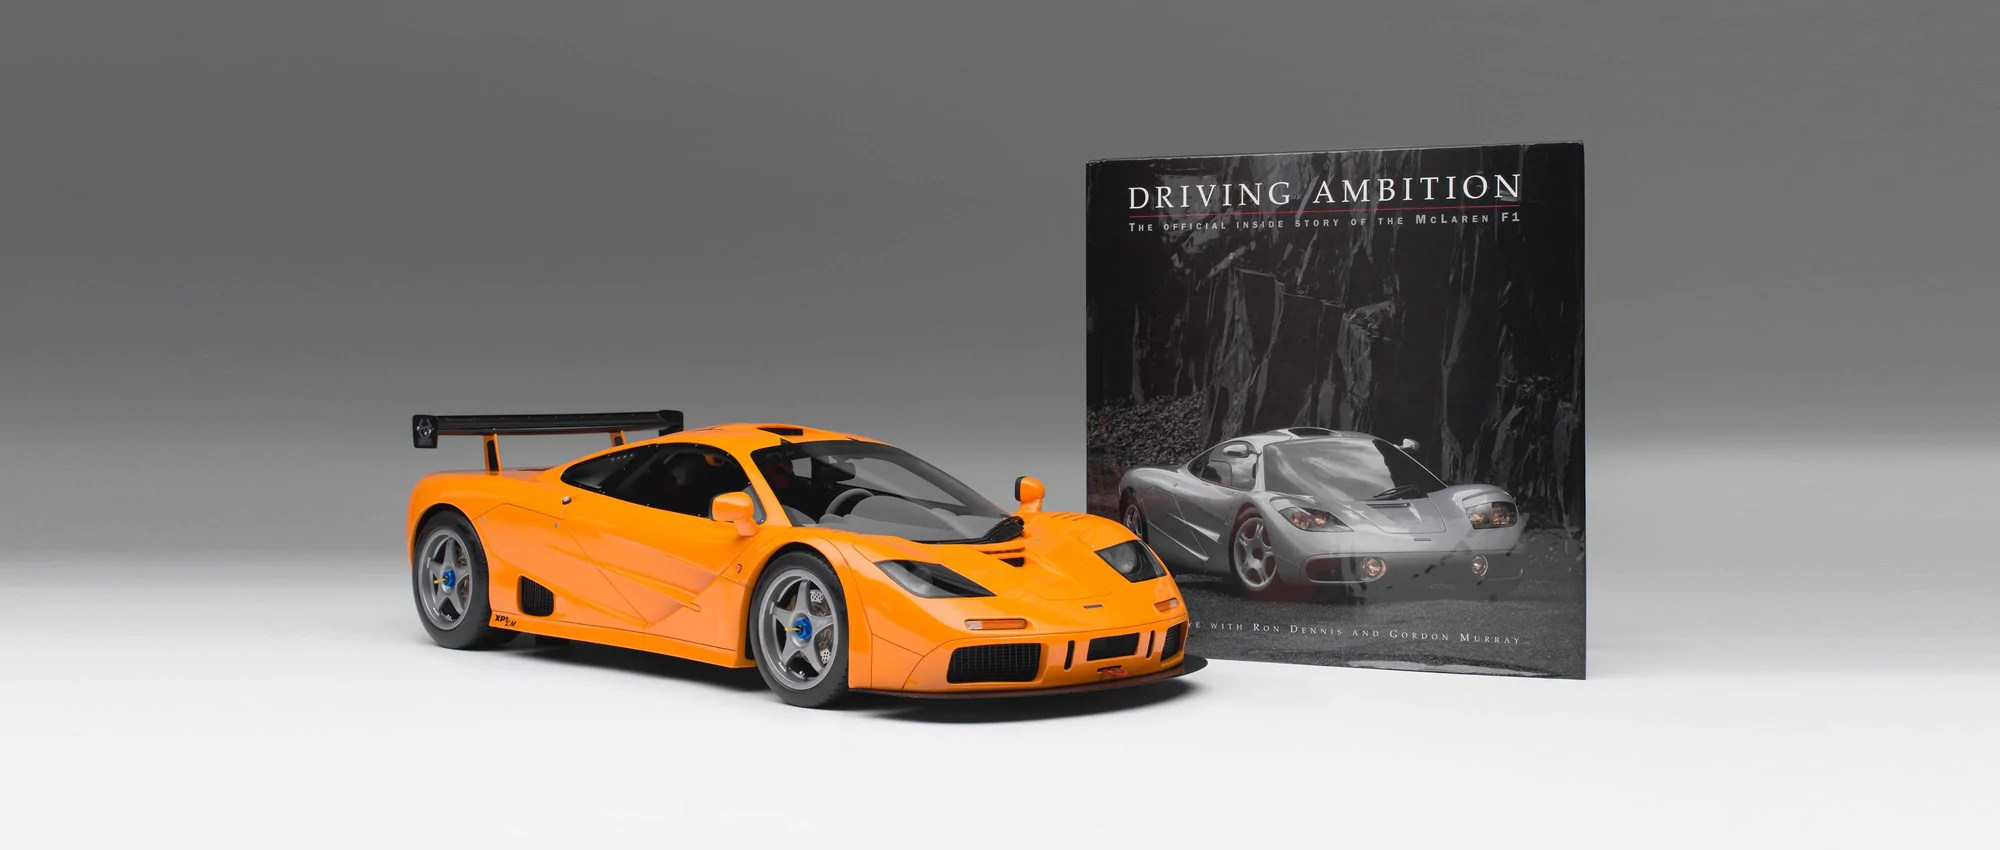 mclaren f1 lm gordon murray signed copy of driving ambition  [ 2000 x 850 Pixel ]